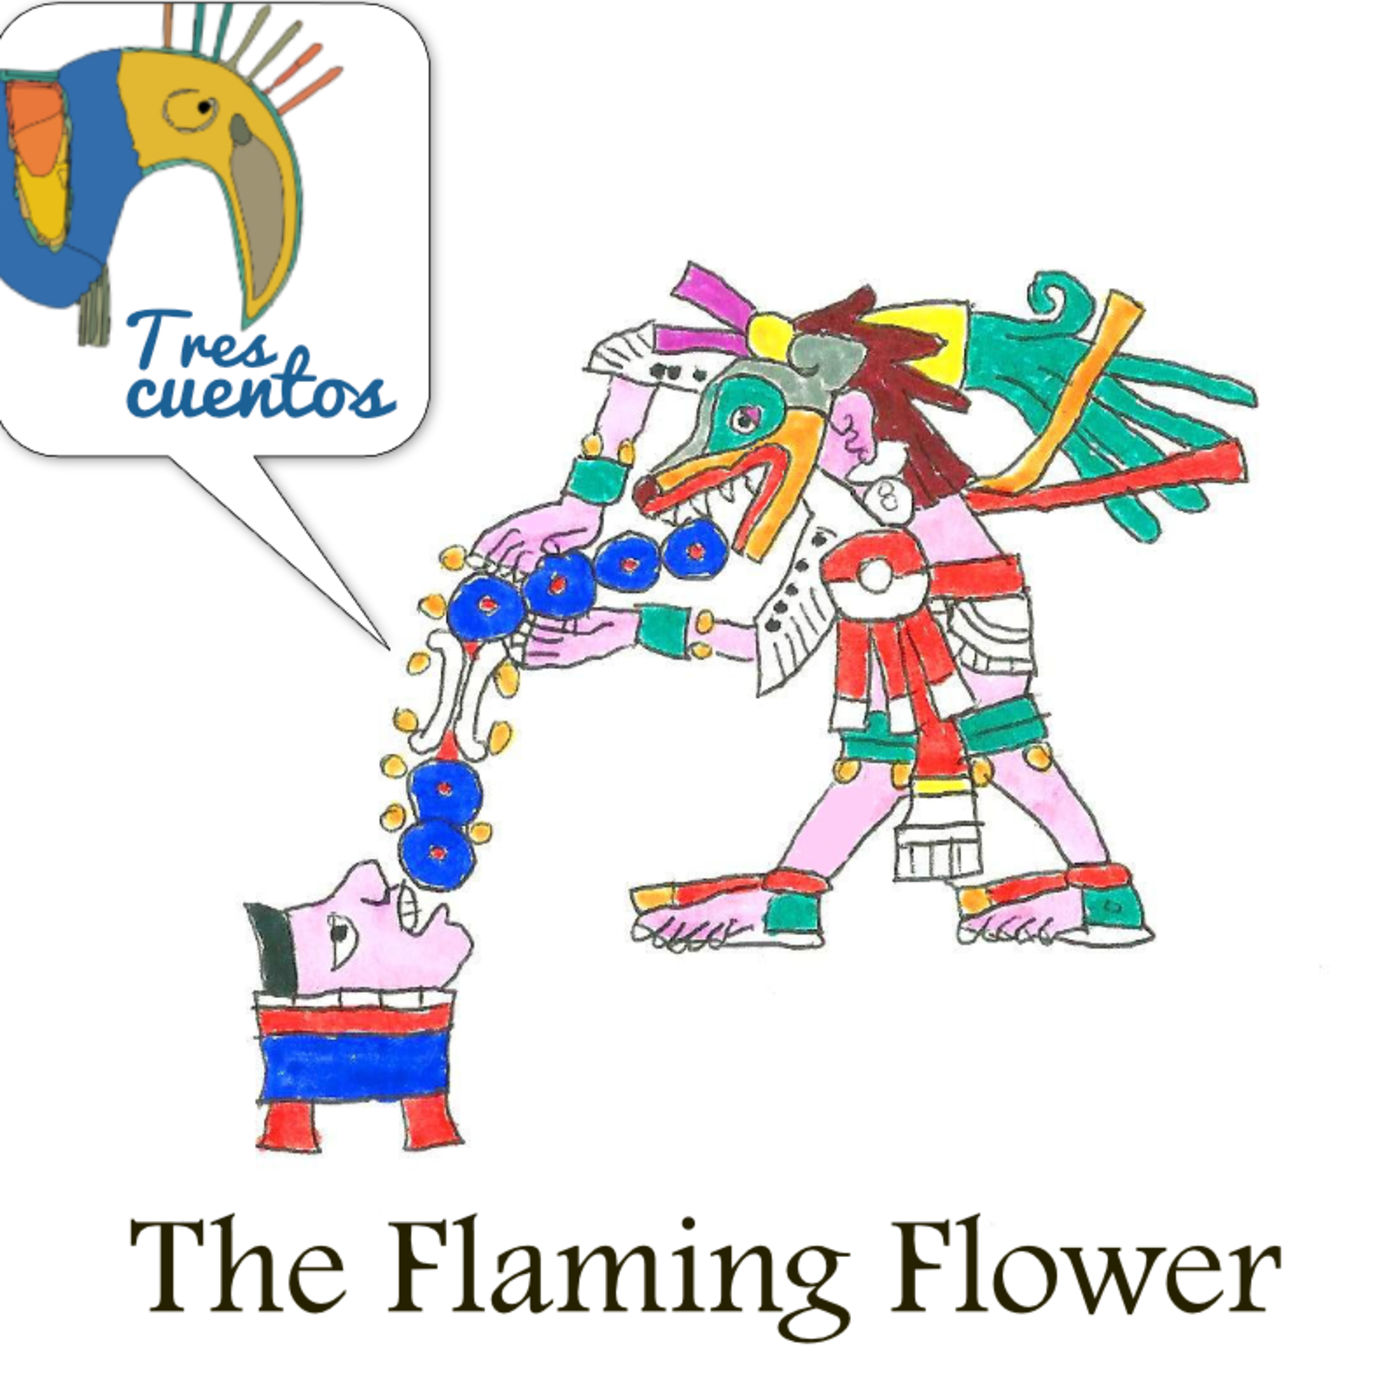 4- Mythology - The Flaming Flower - Mexico